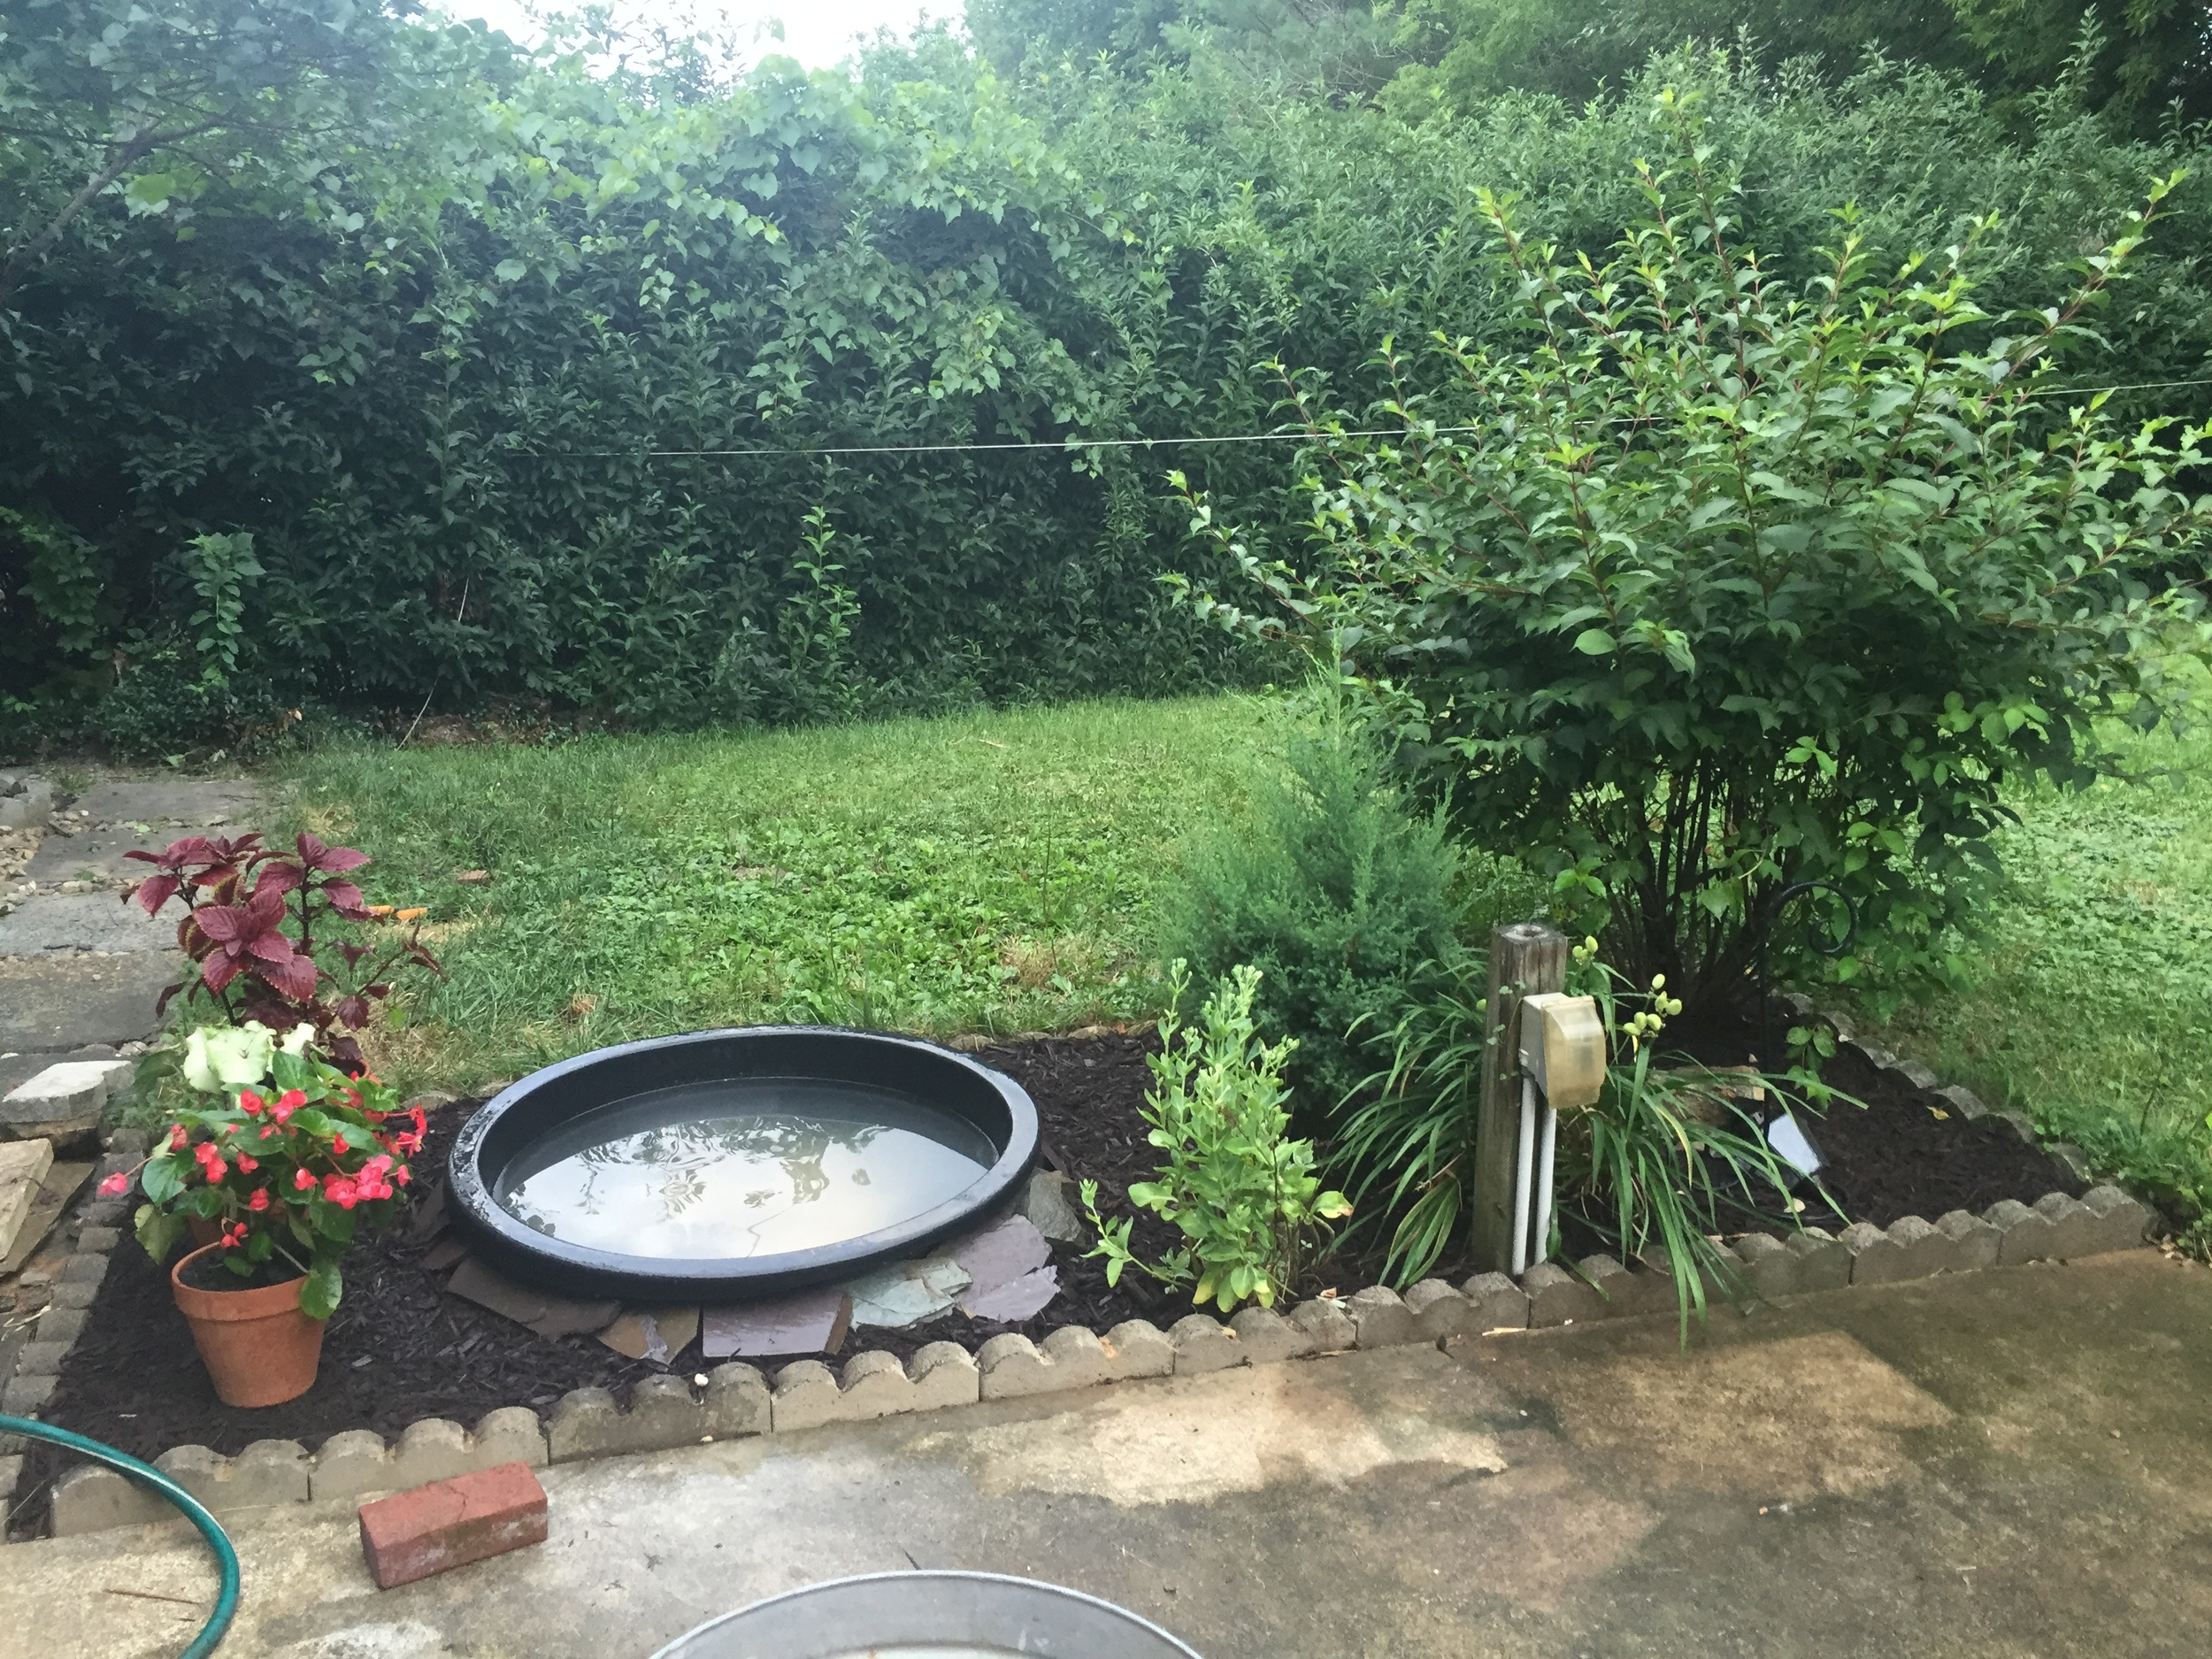 almost-installed-patio-water-fountain-fixture